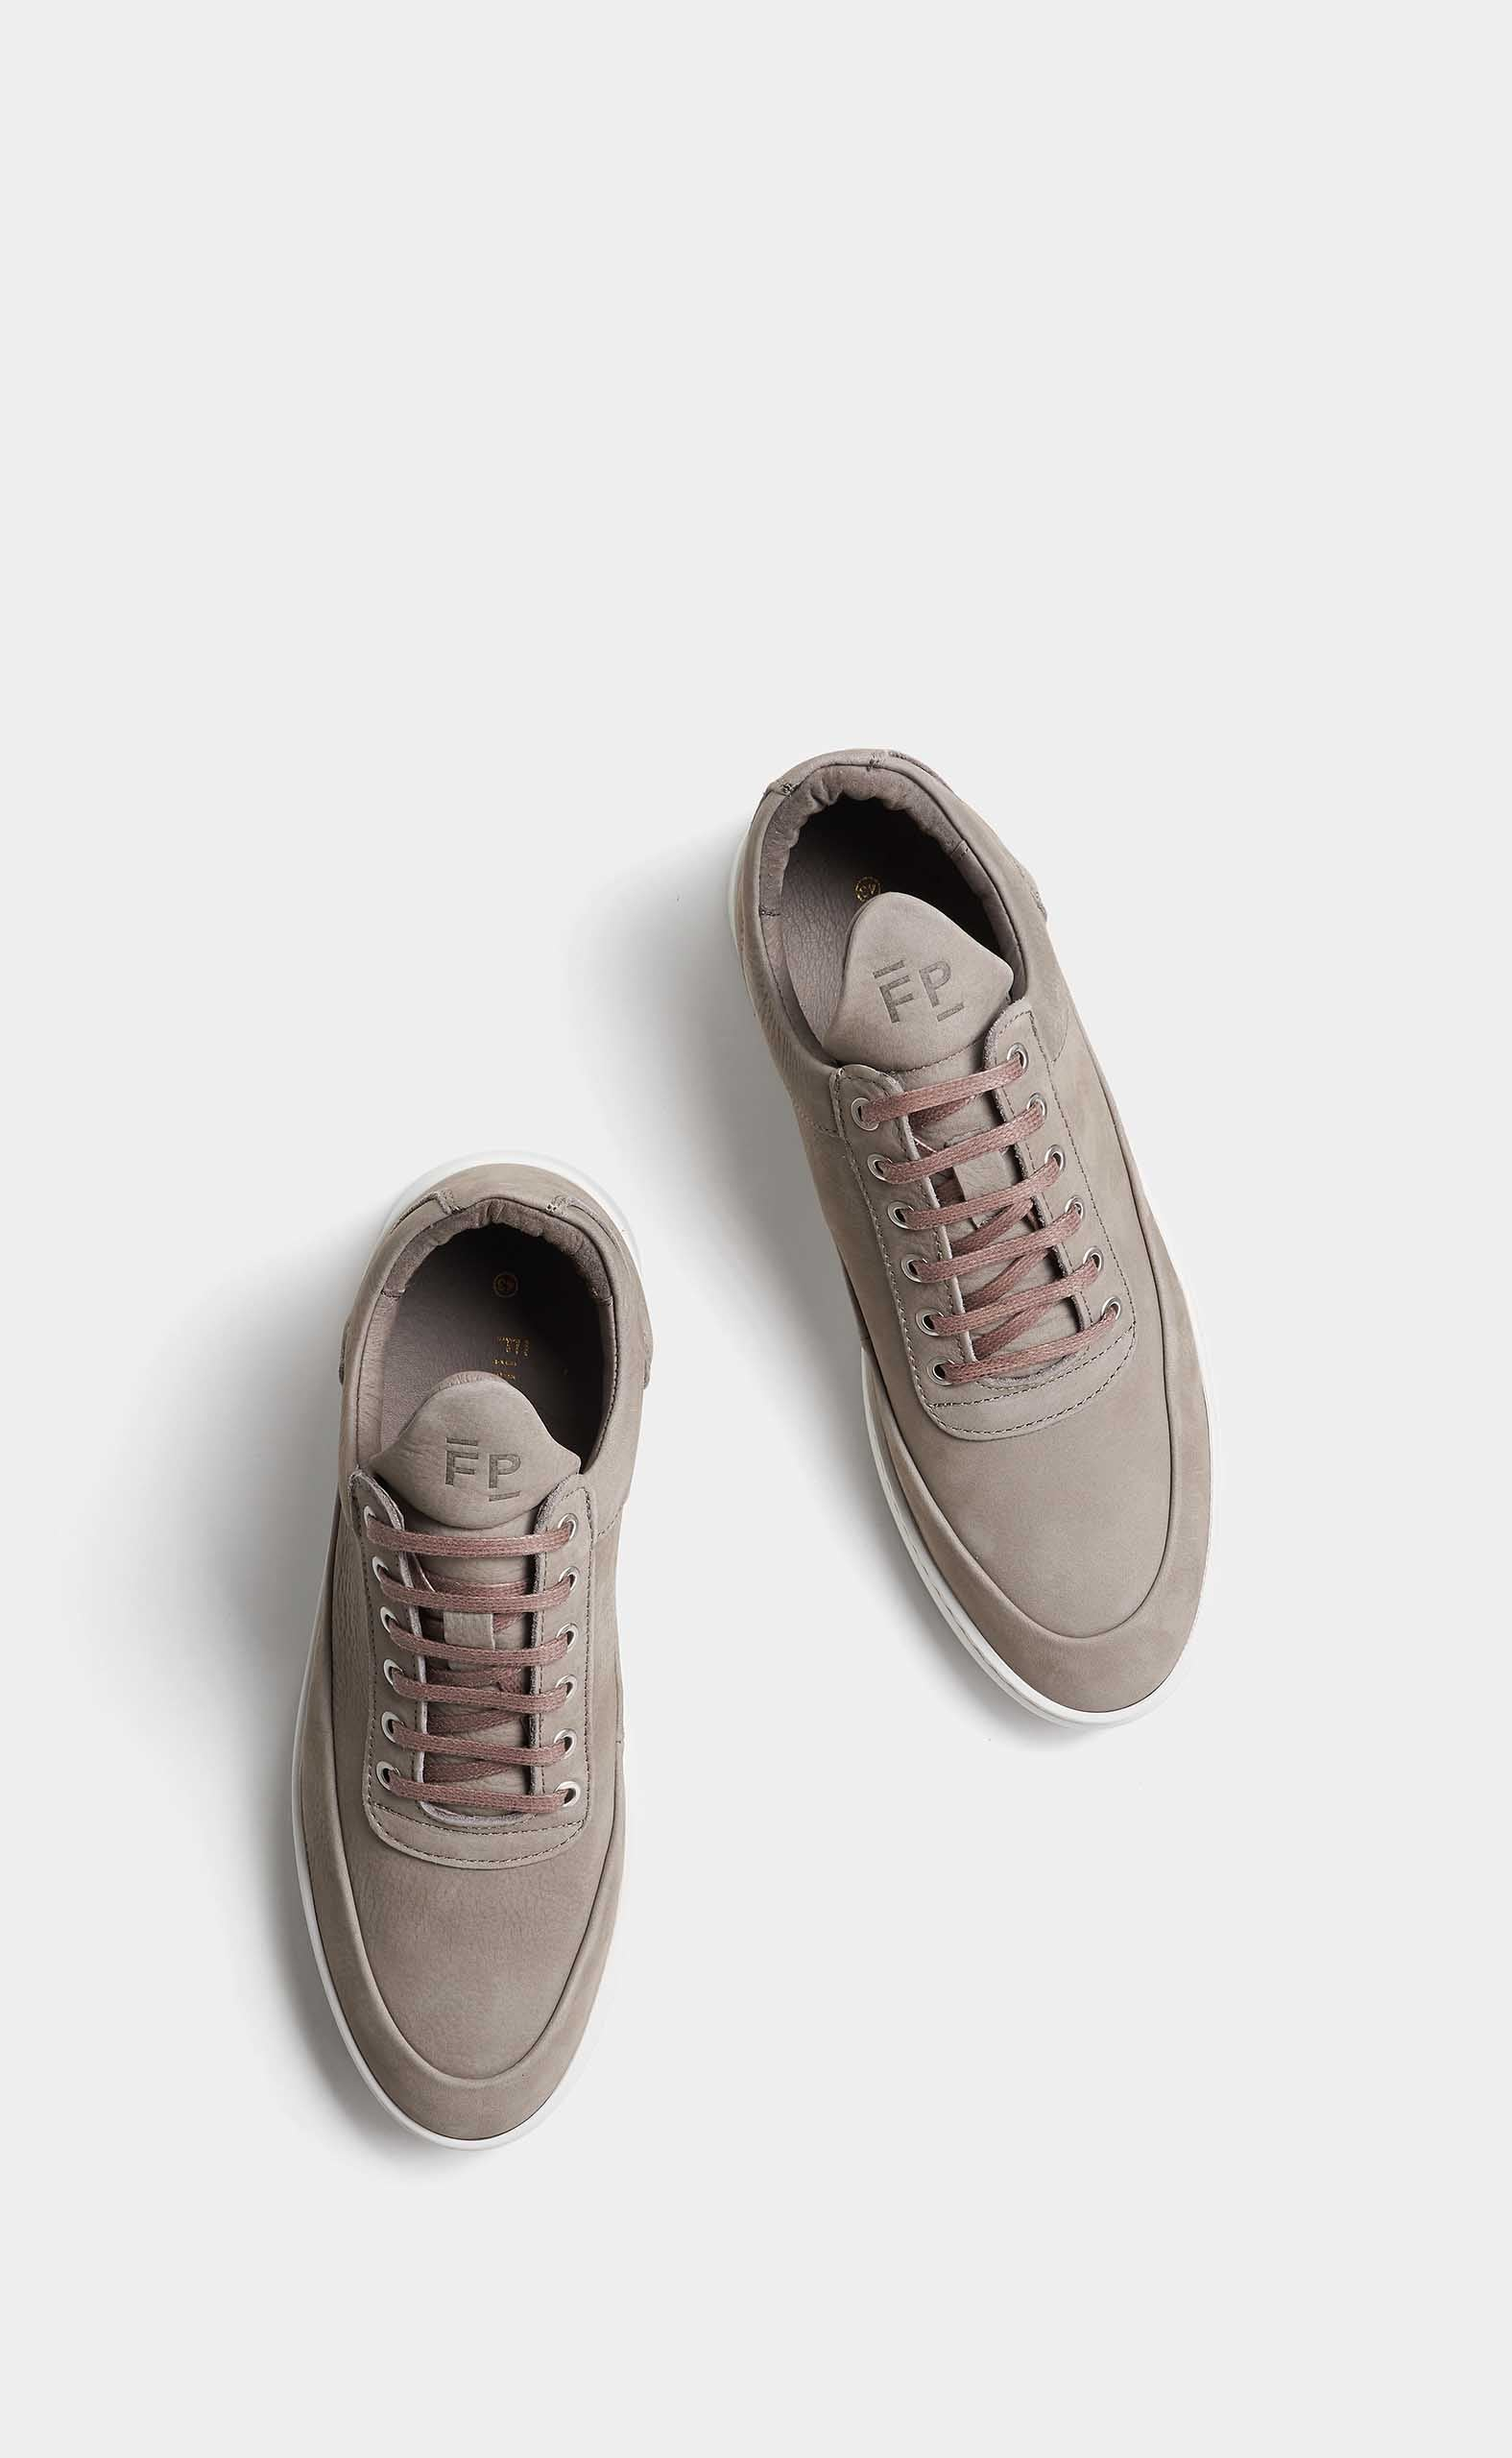 Low Top Ripple Cairos Grey